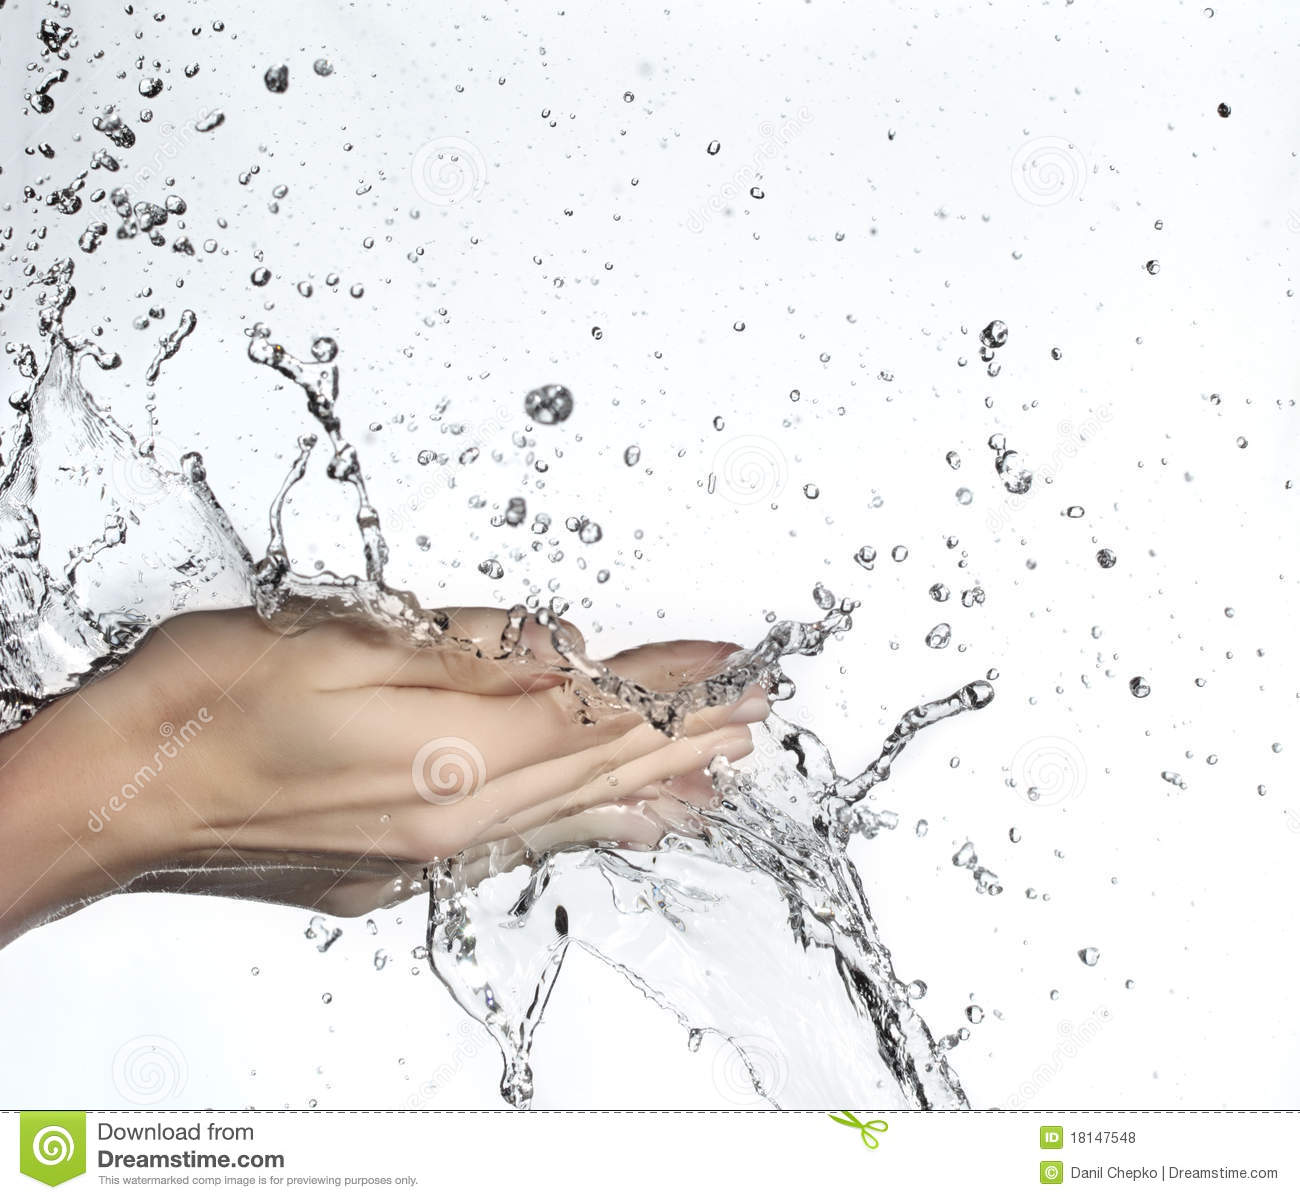 Hand In Water Splash Royalty Free Stock Photos - Image: 18147548 Water In Hand